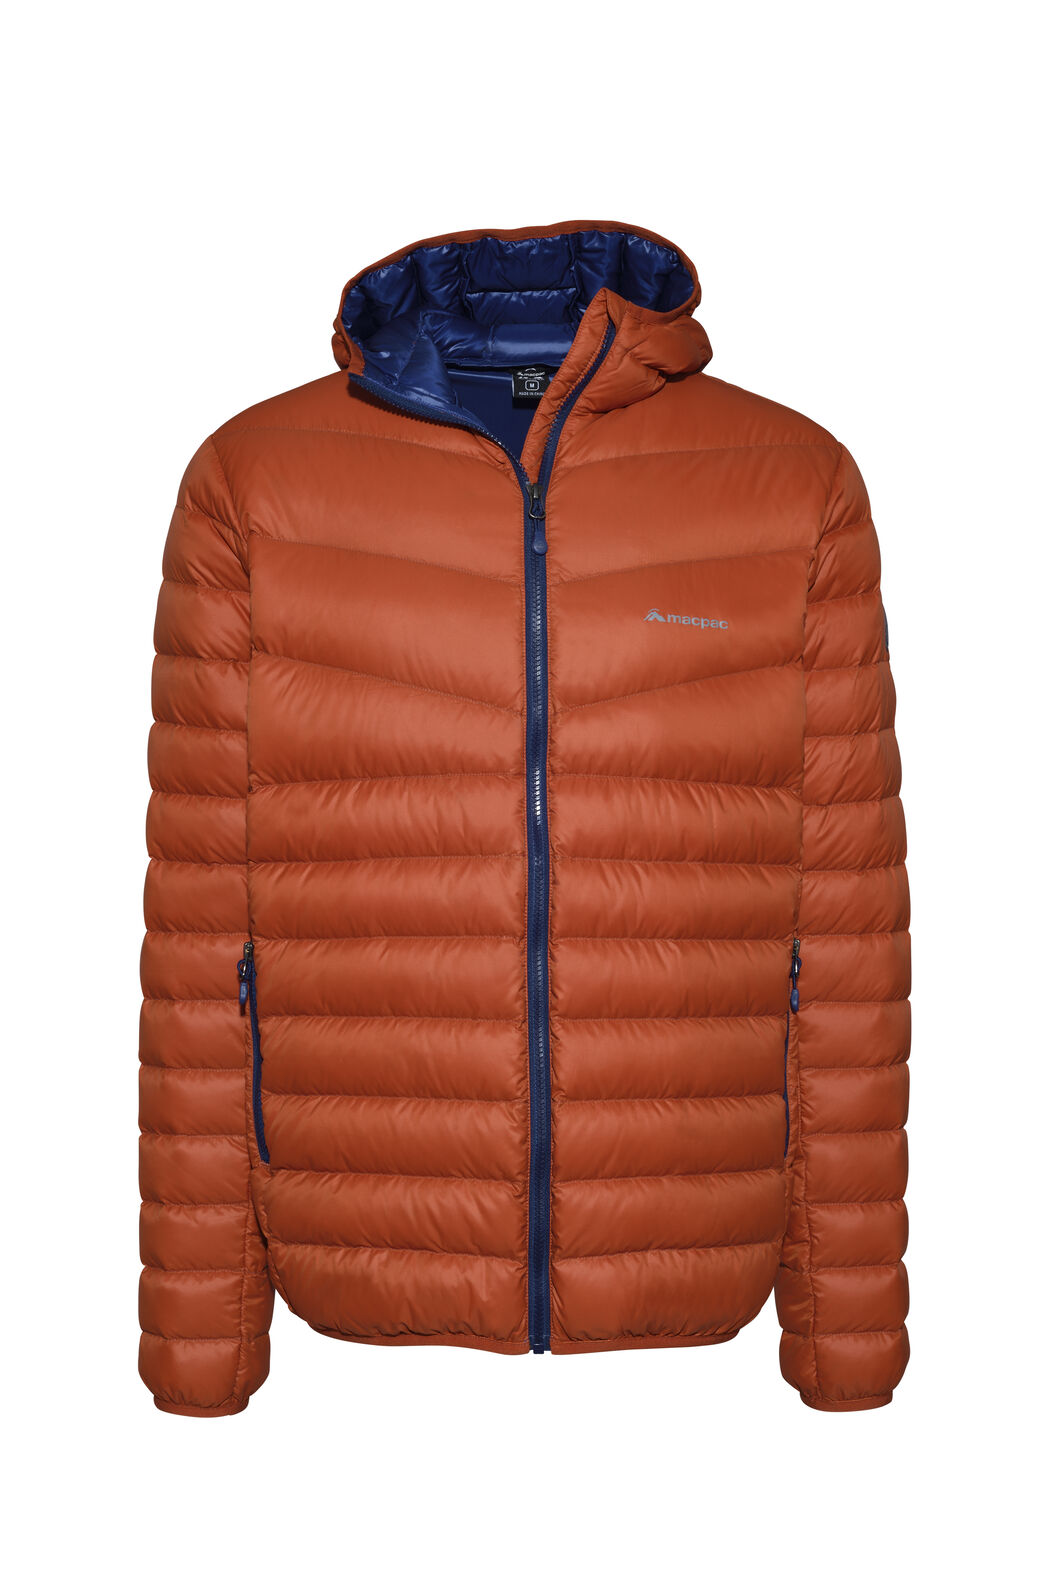 Macpac Mercury Down Jacket - Men's, Rooibos Tea, hi-res